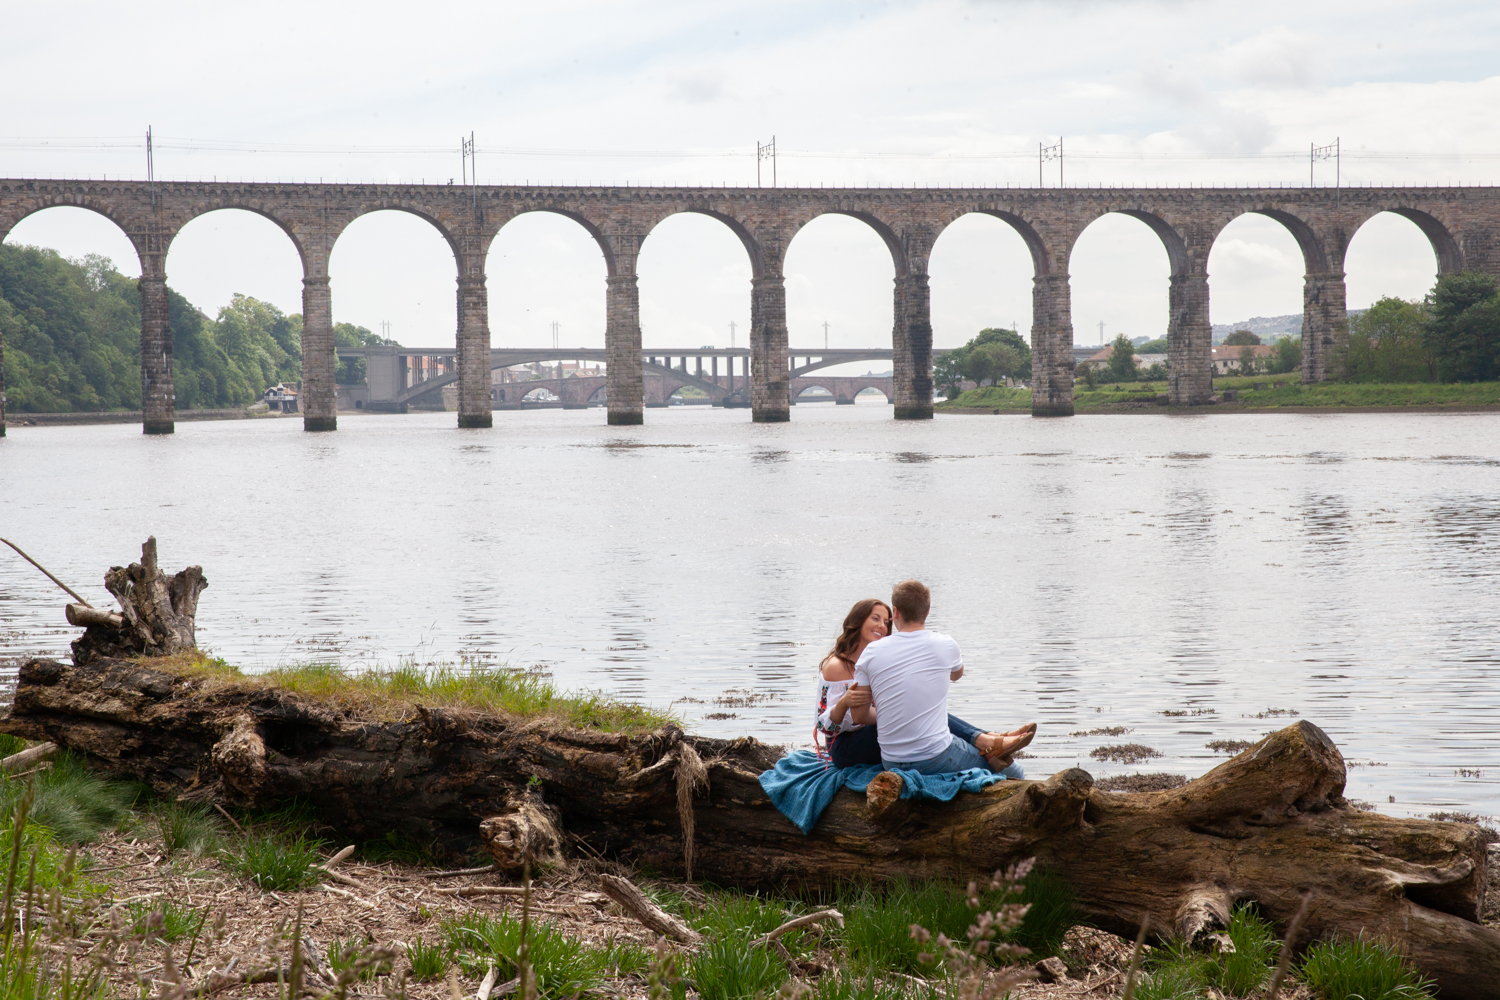 MICHAEL_ANNALISE_PRE-WEDDING_PHOTOSHOOT_BERWICK_PICTORIAL_PHOTOGRAPHY_COUPLE_RIVER_BOAT_RIVERSIDE_BRIDGES--1071.jpg